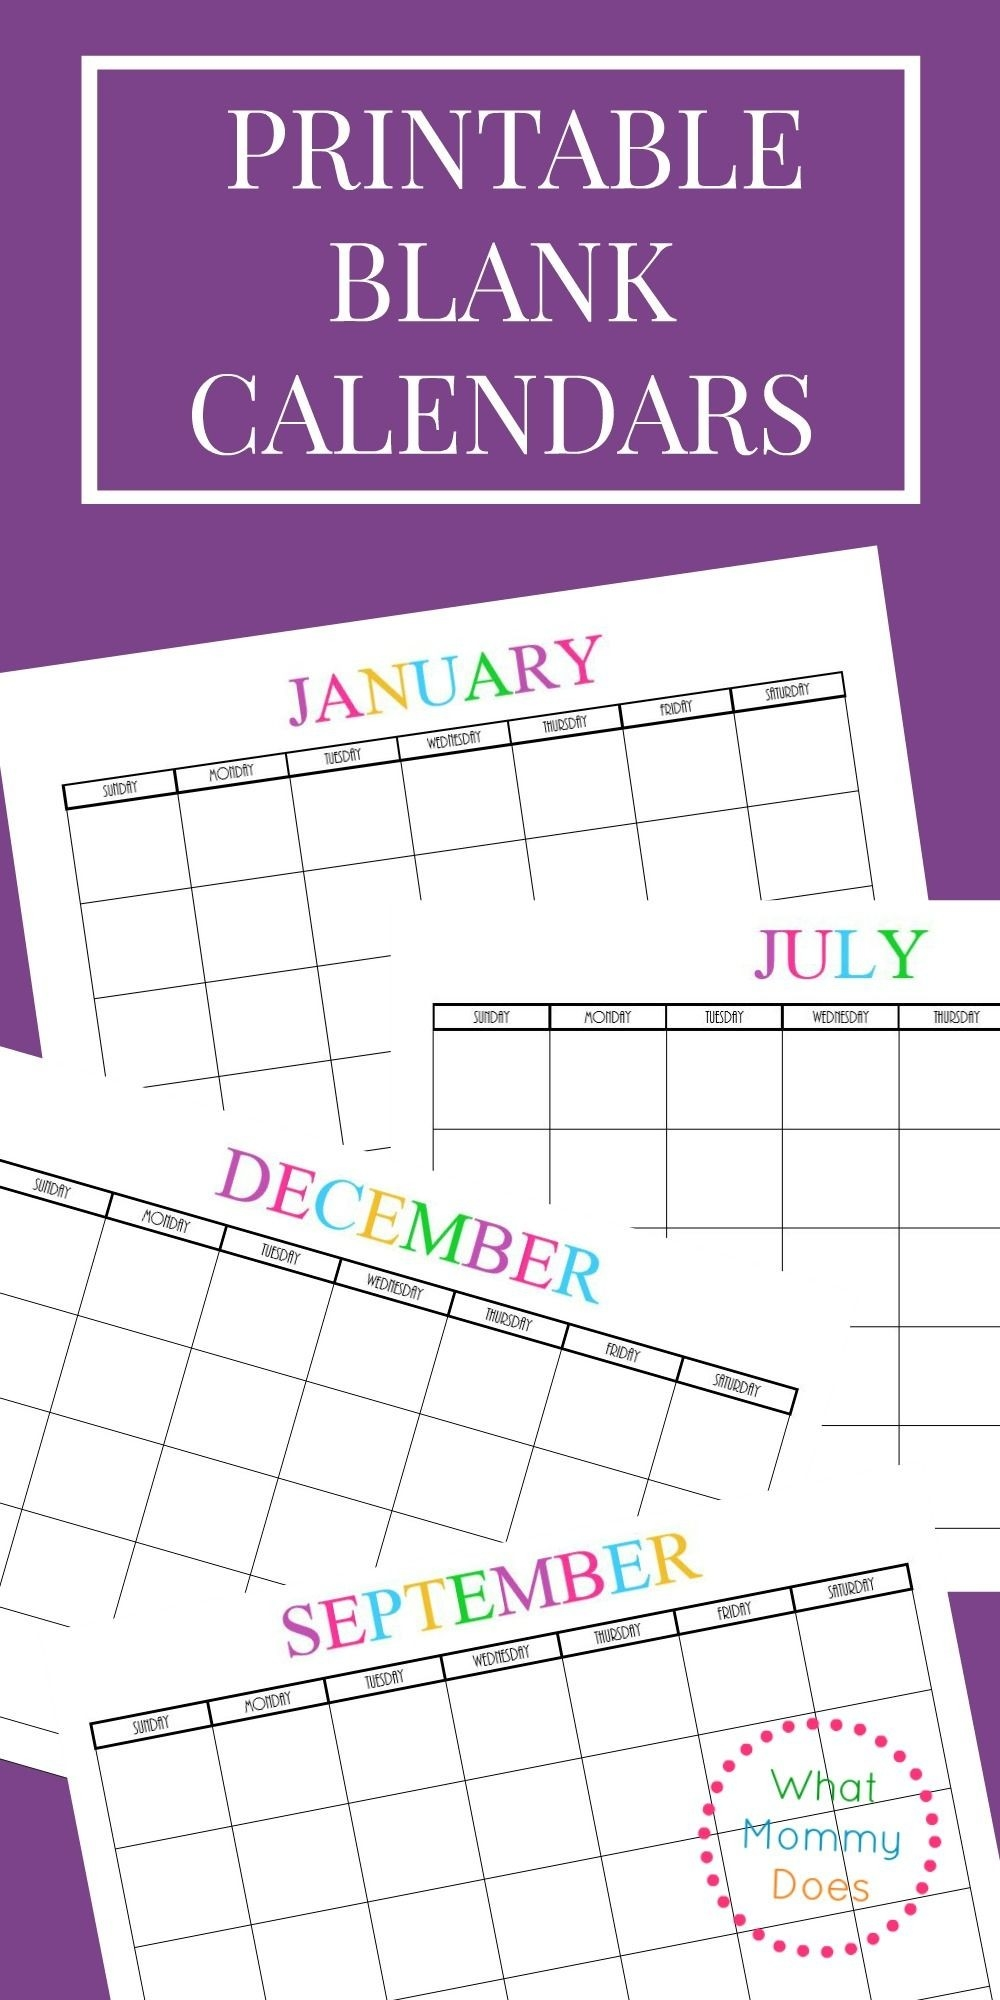 Free Printable Blank Monthly Calendars – 2018, 2019, 2020-Create 2020 - 2021 Blank Monthly Calendar